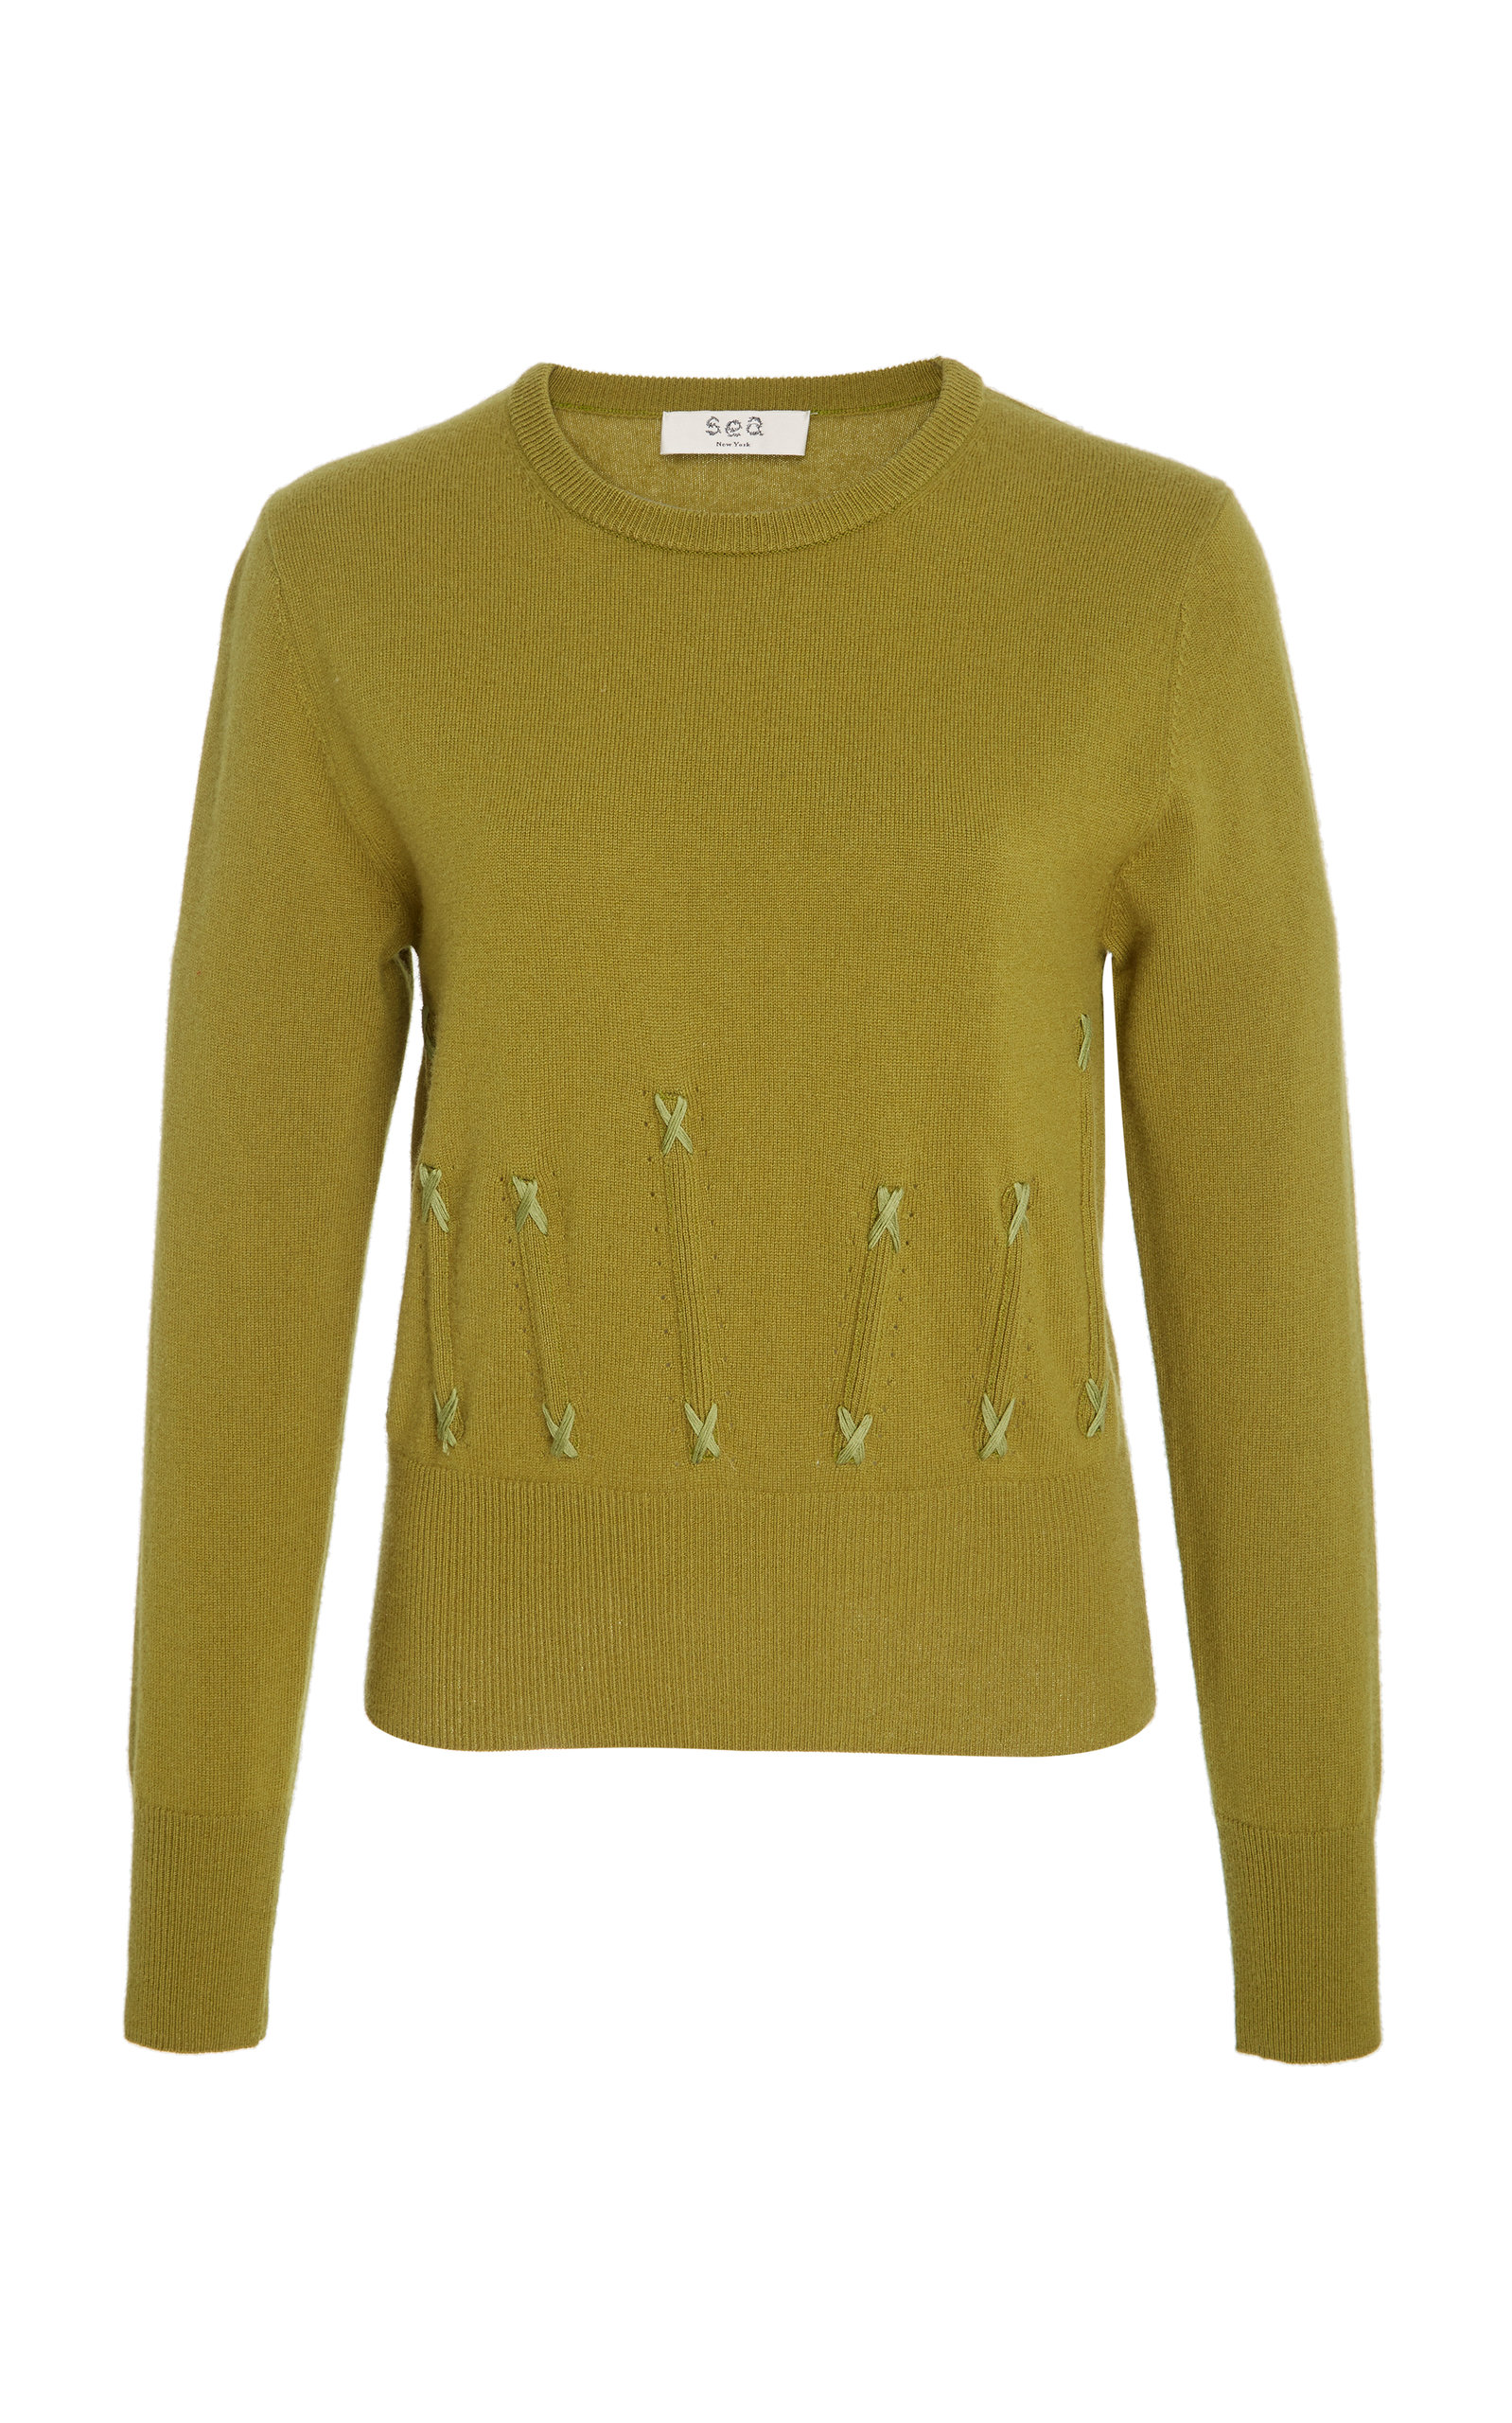 SEA Cailyn Corset Knit Cashmere Sweater in Green